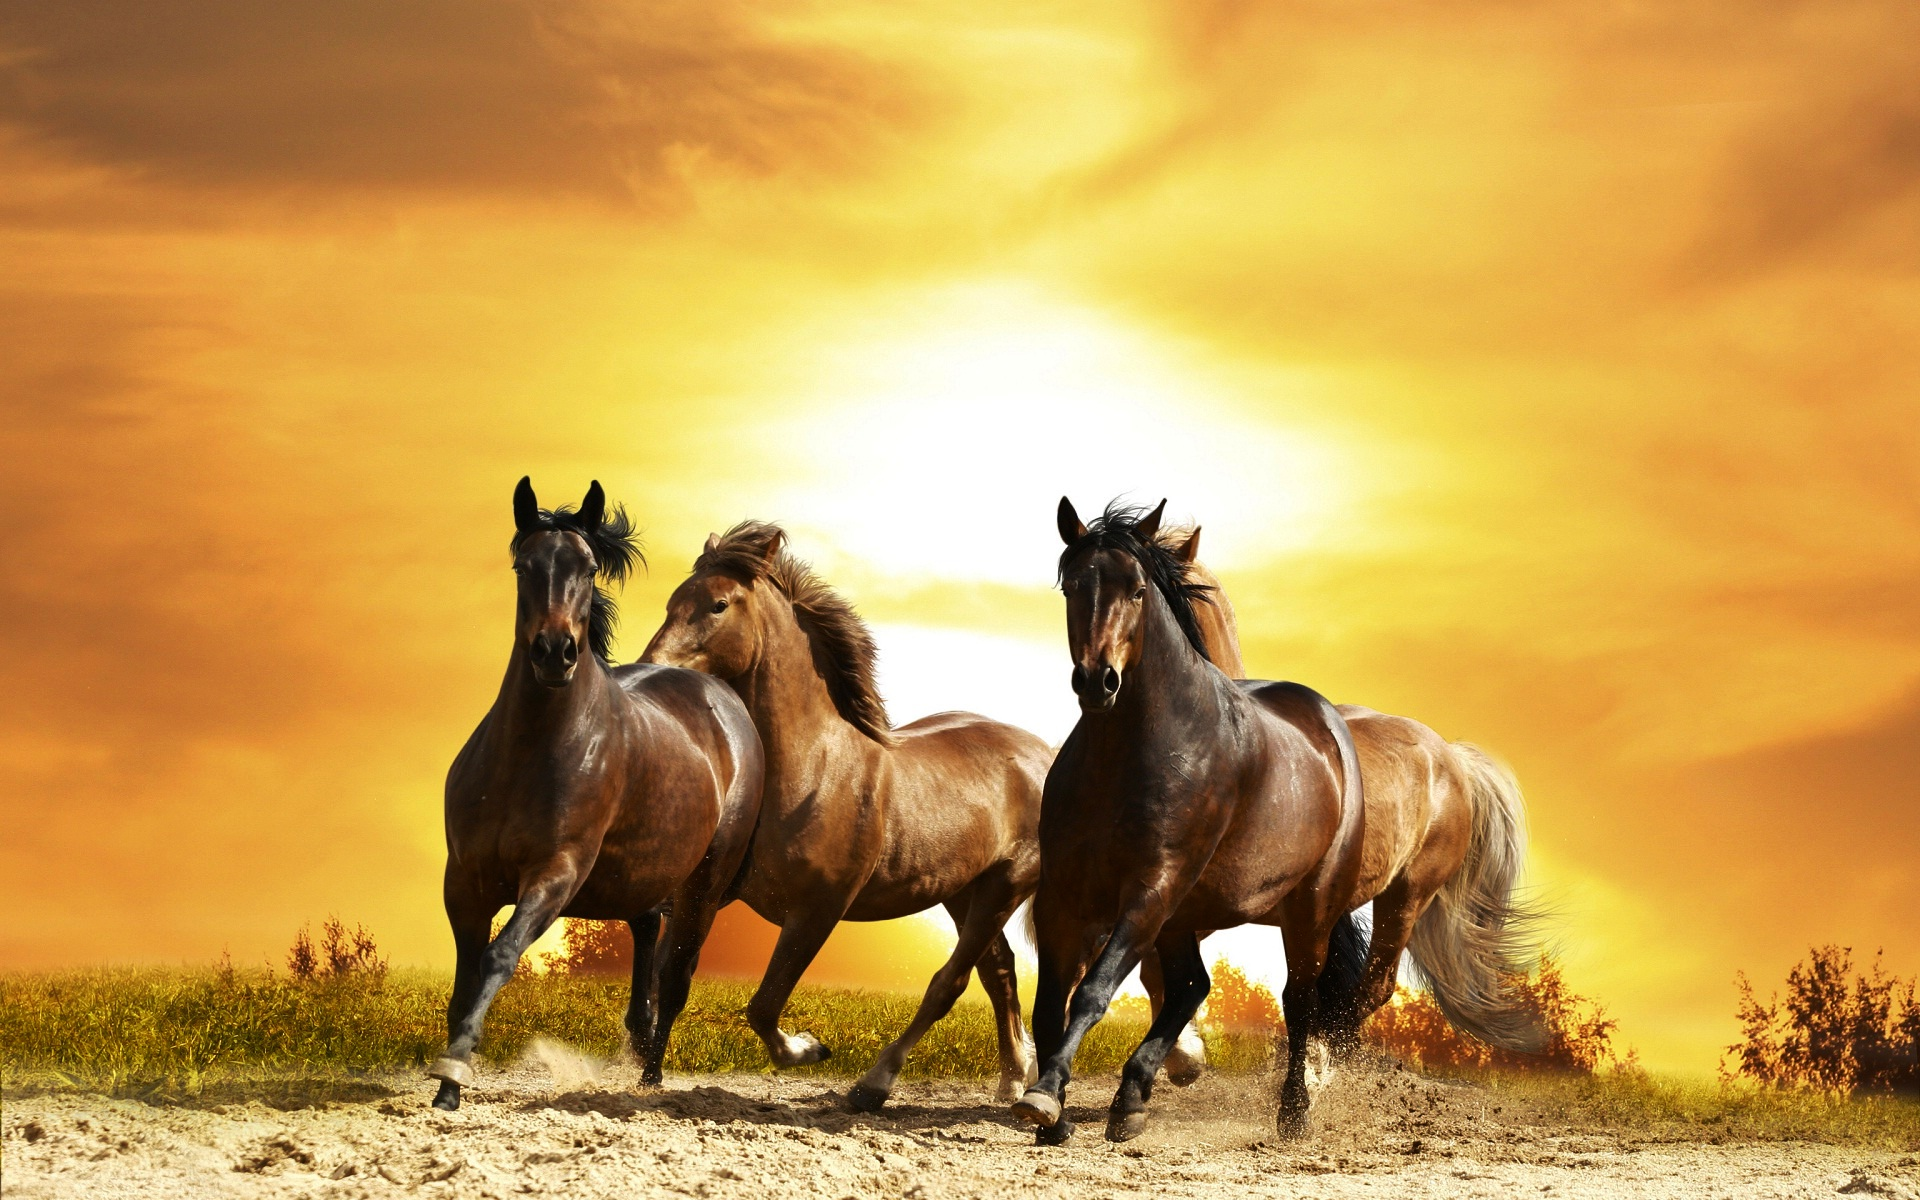 Hd Horse Running Background 2377595 Hd Wallpaper Backgrounds Download